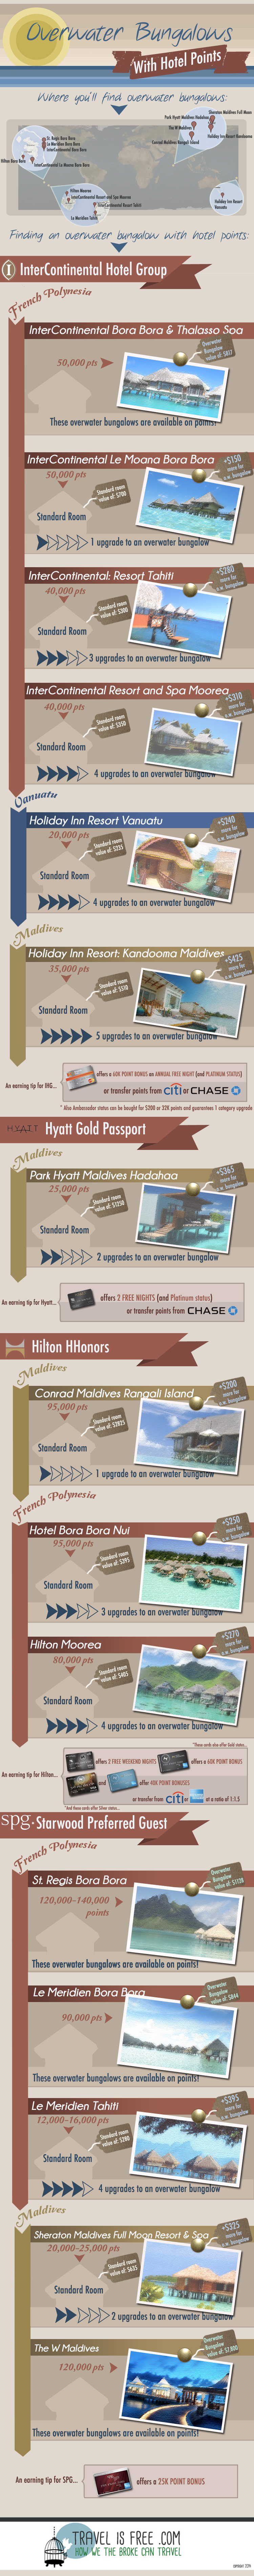 Travelisfree Infographic